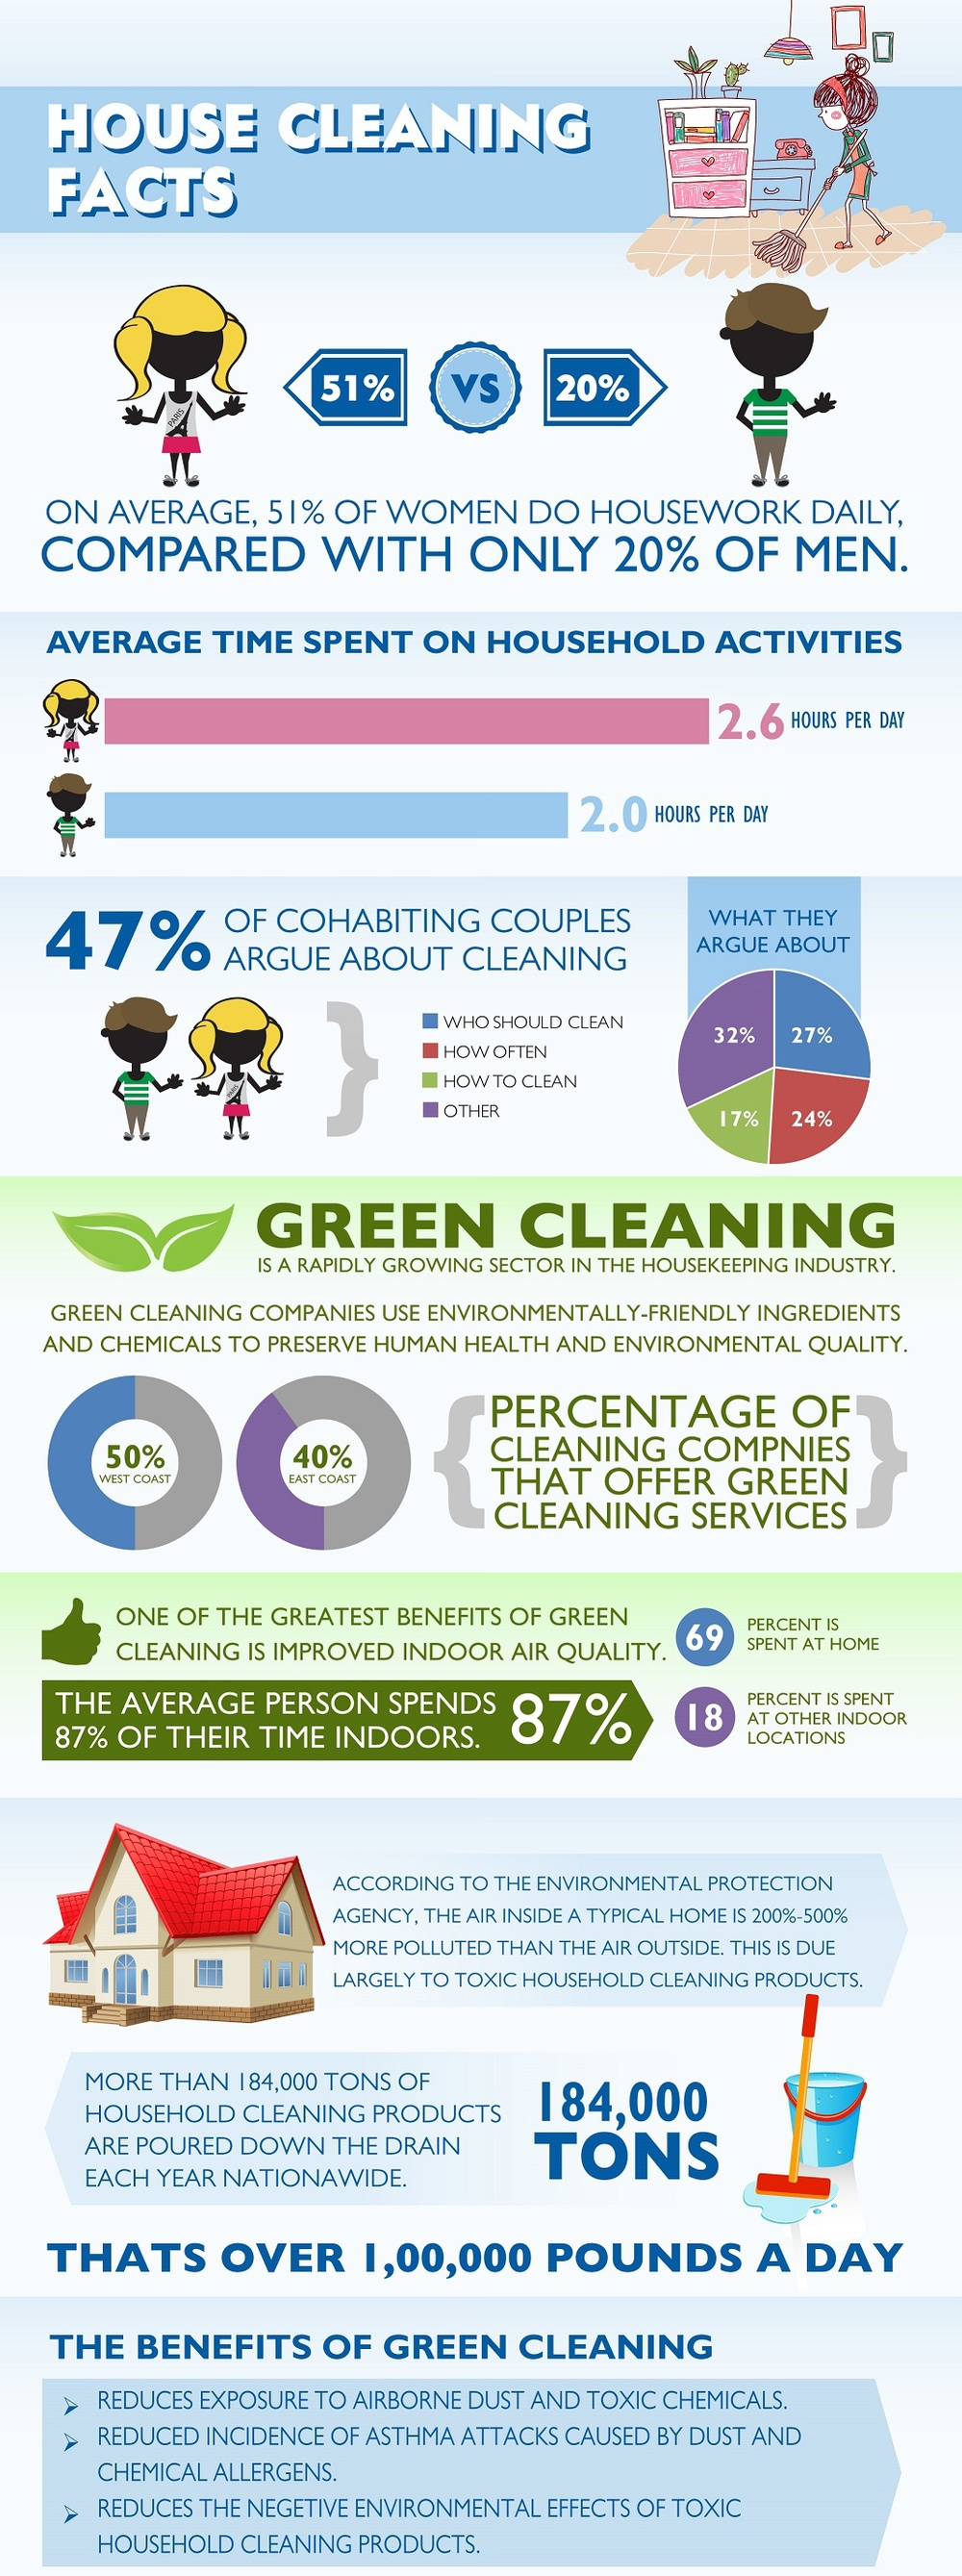 cleaning service facts